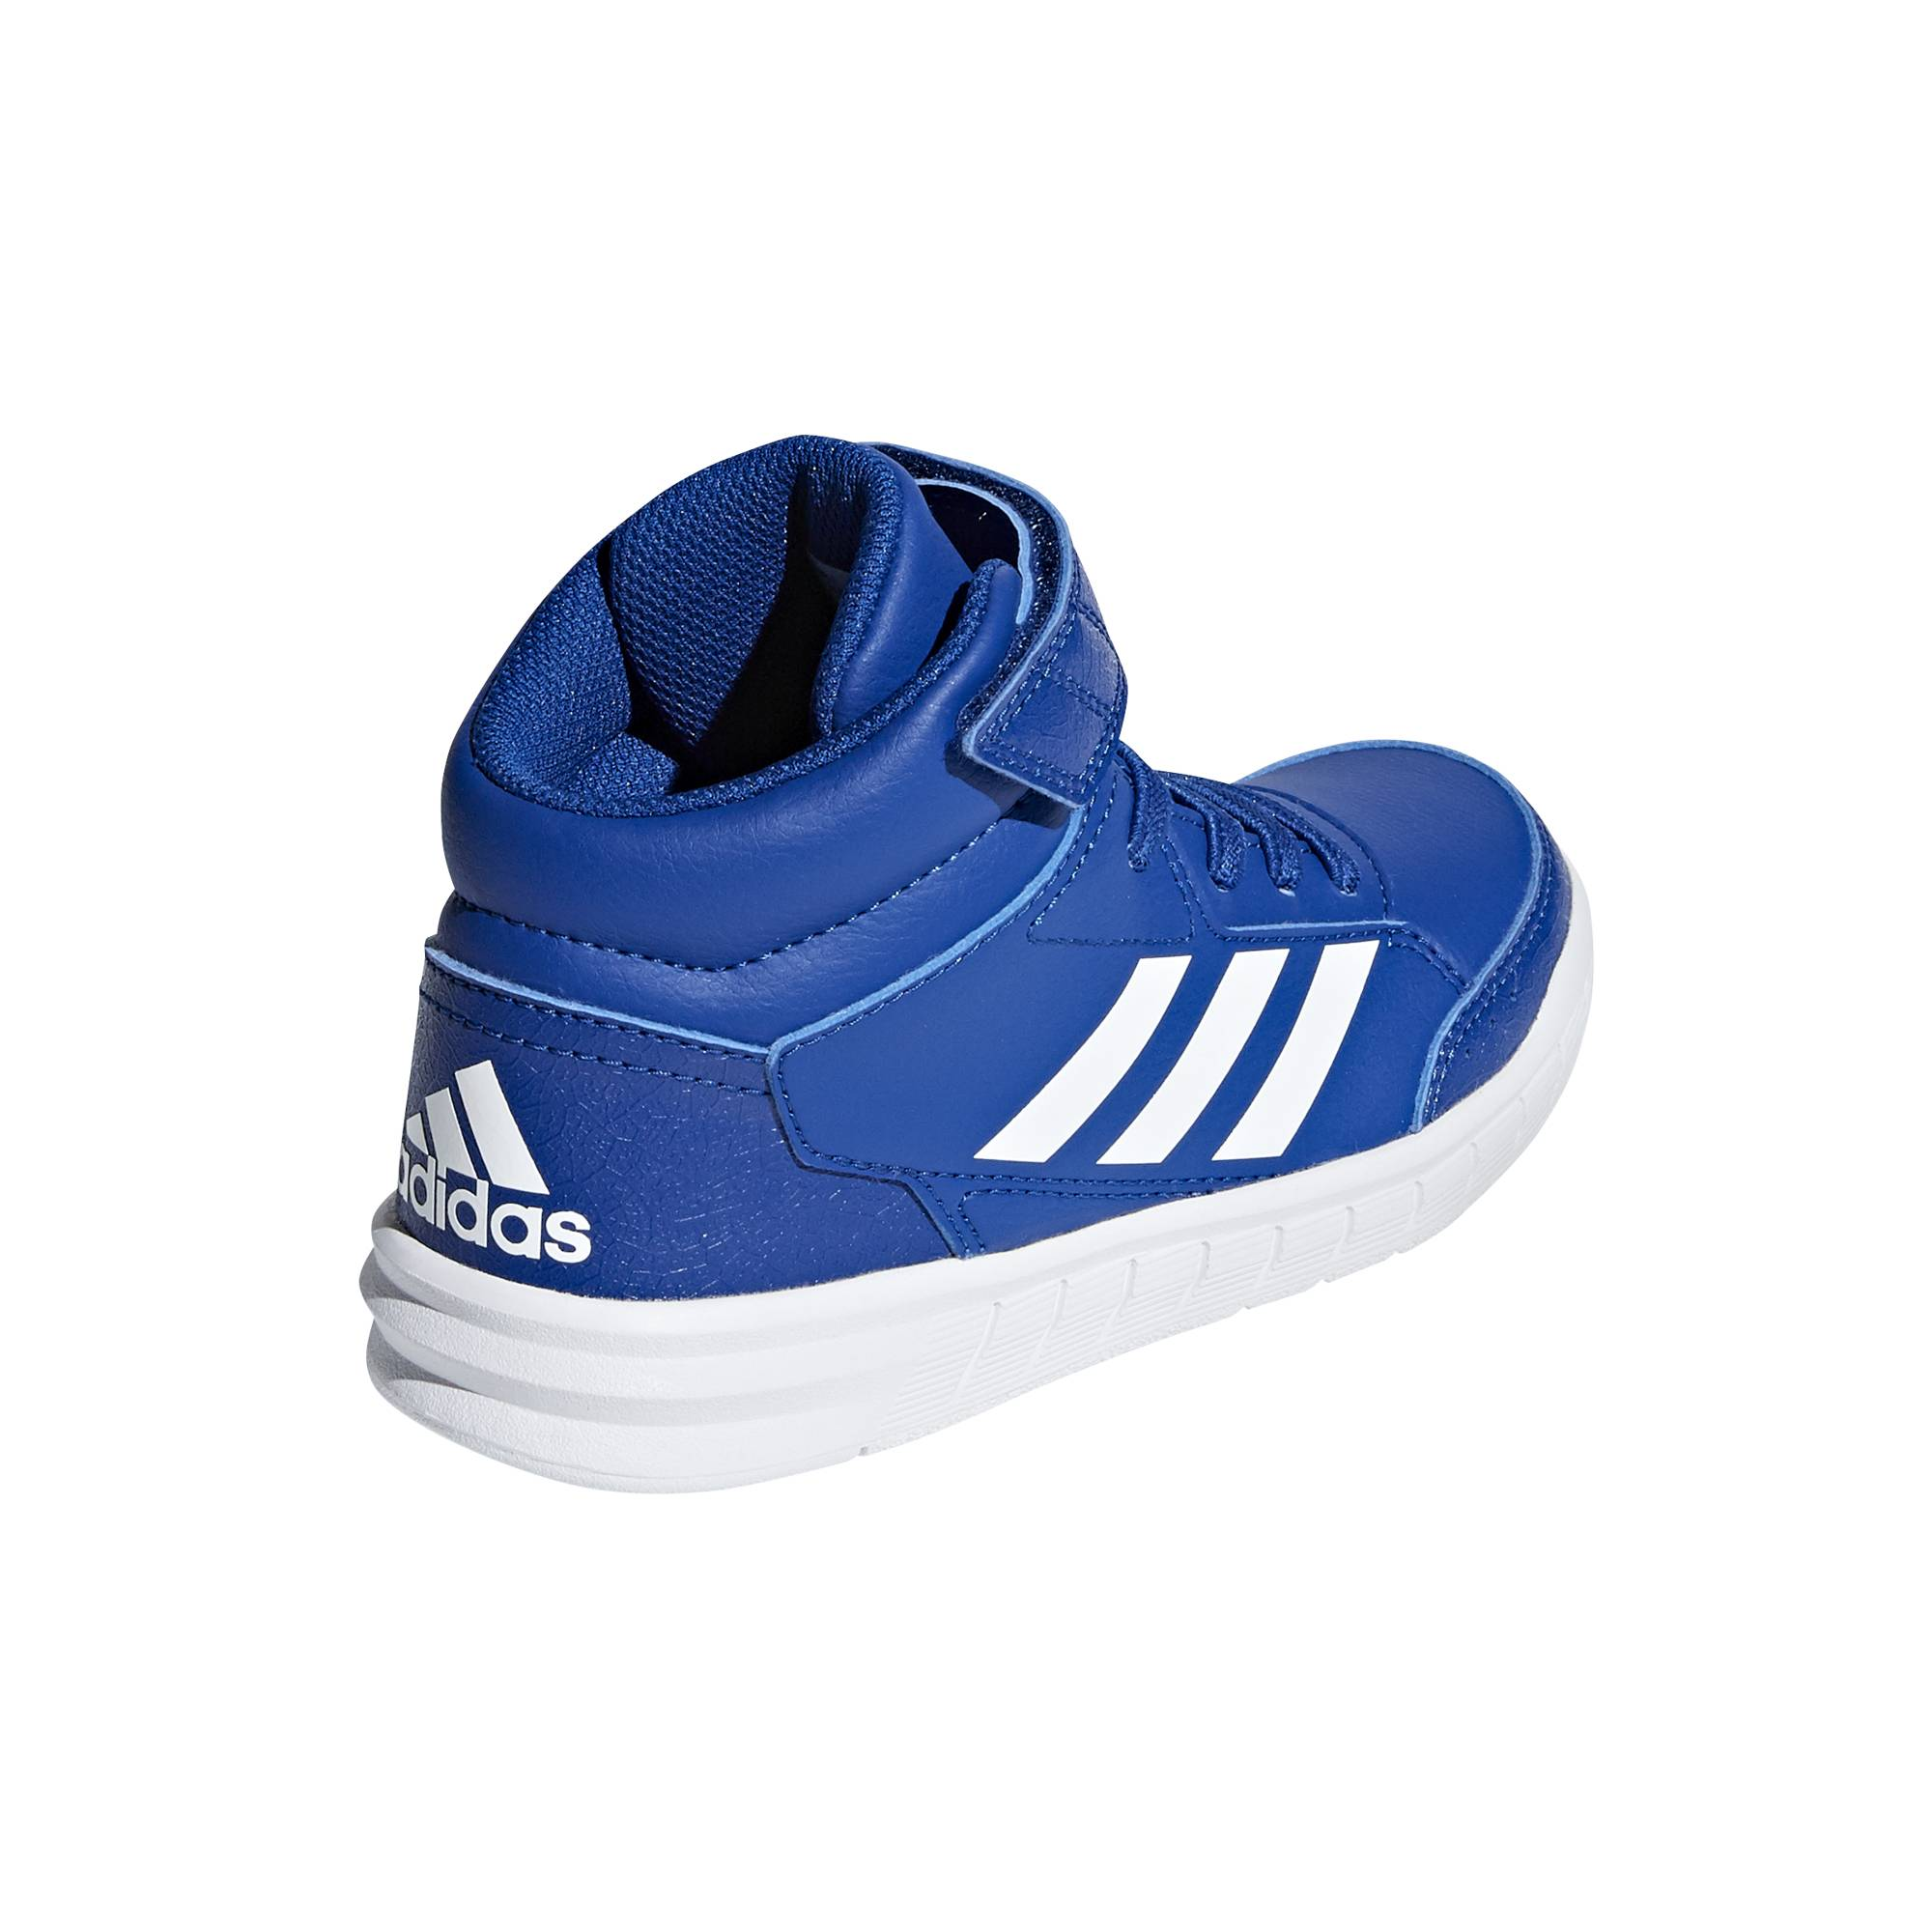 newest 6df16 07016 ADIDAS KIDS BOYS TRAINING ALTASPORT MID EL SHOES AQ0186   San Siro Sports    Casual